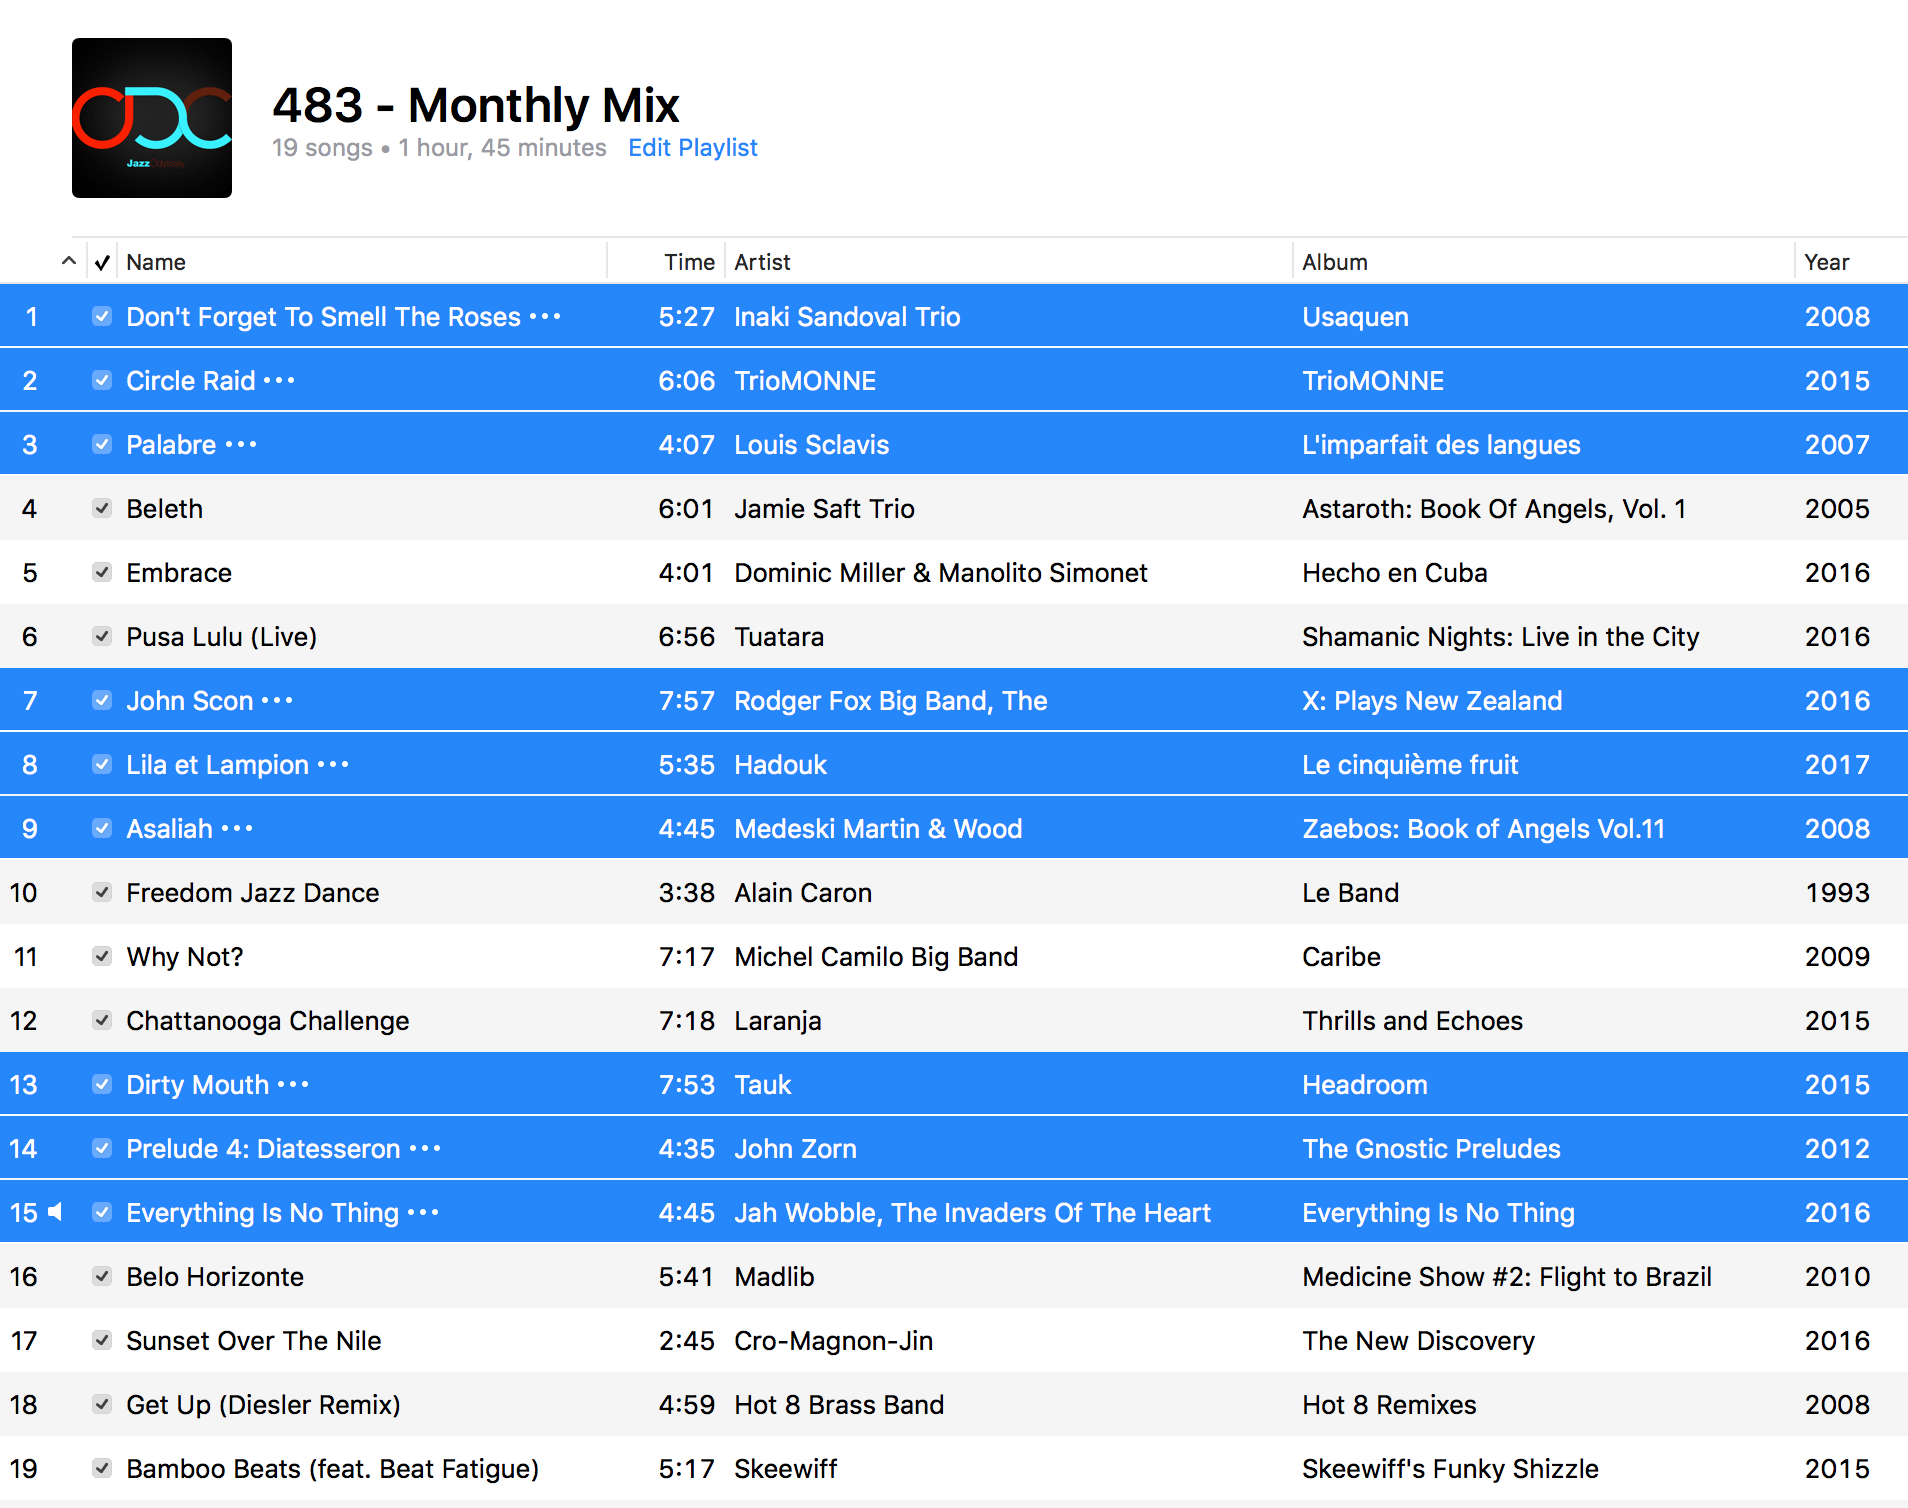 Jazz ODC #483 - The Montly Mix - Playlist